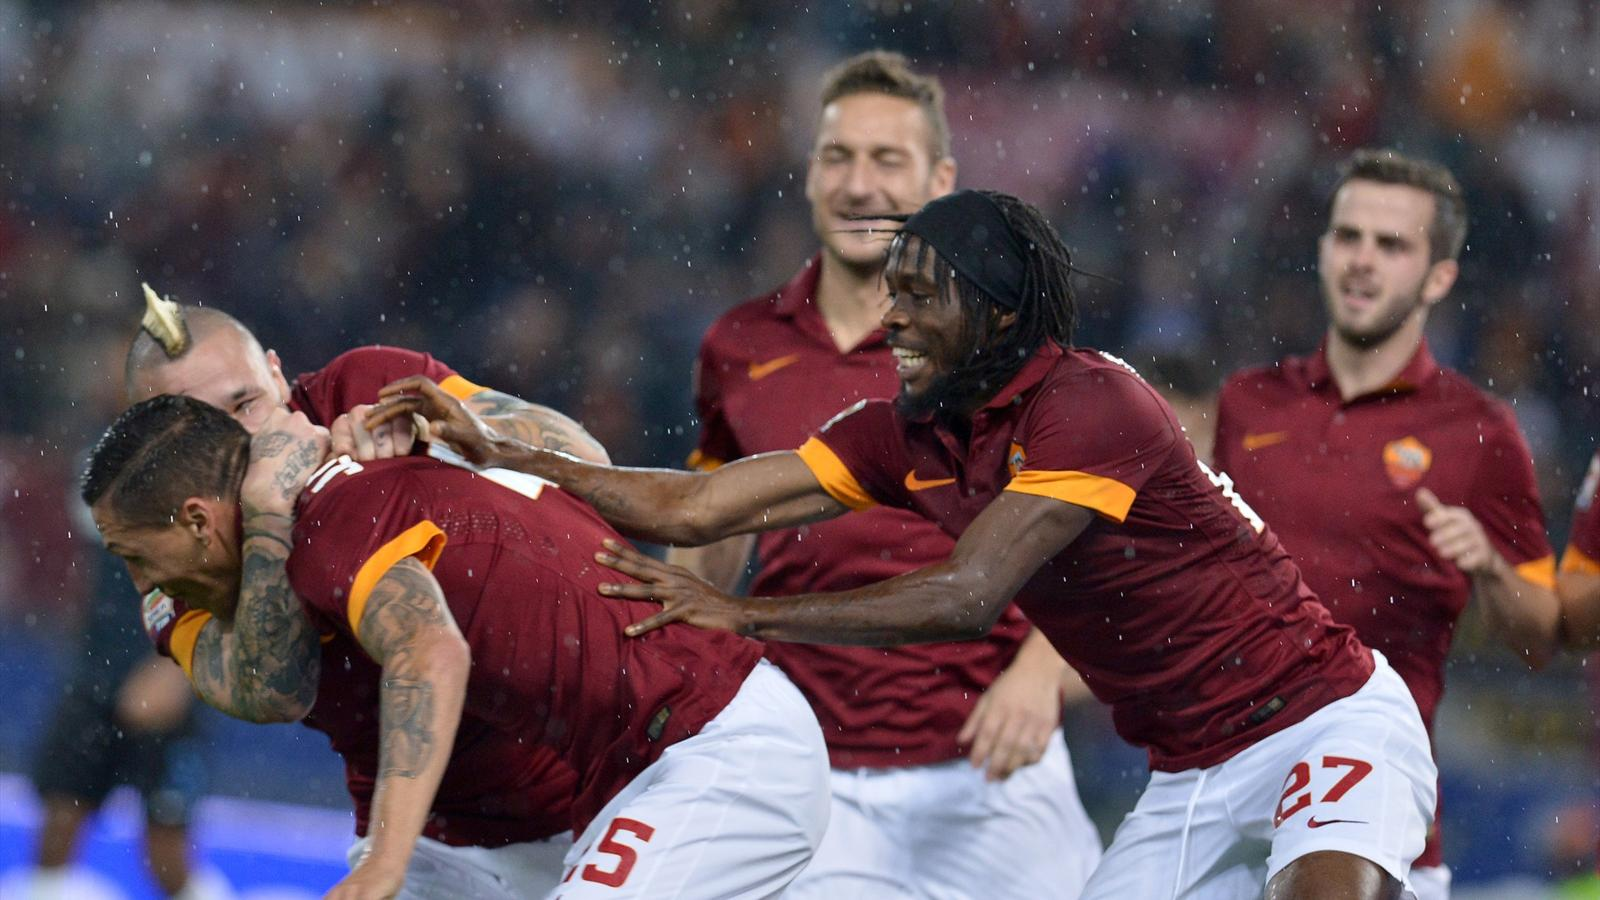 AS Rome 4-2 Inter : Roma a dû cravacher mais elle n